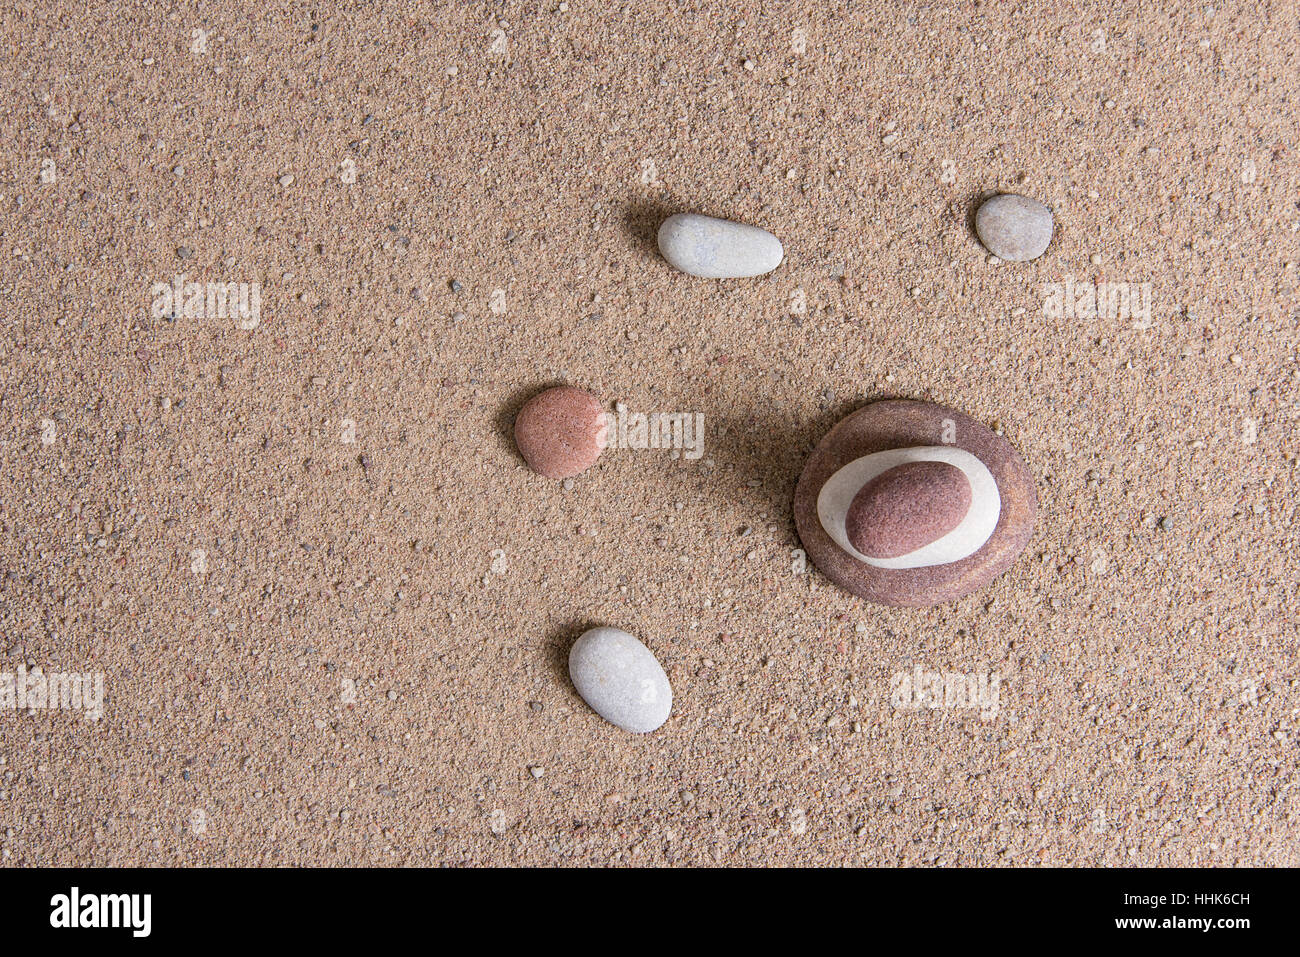 zen garden sand waves and rock sculptures Stock Photo: 131343873 - Alamy